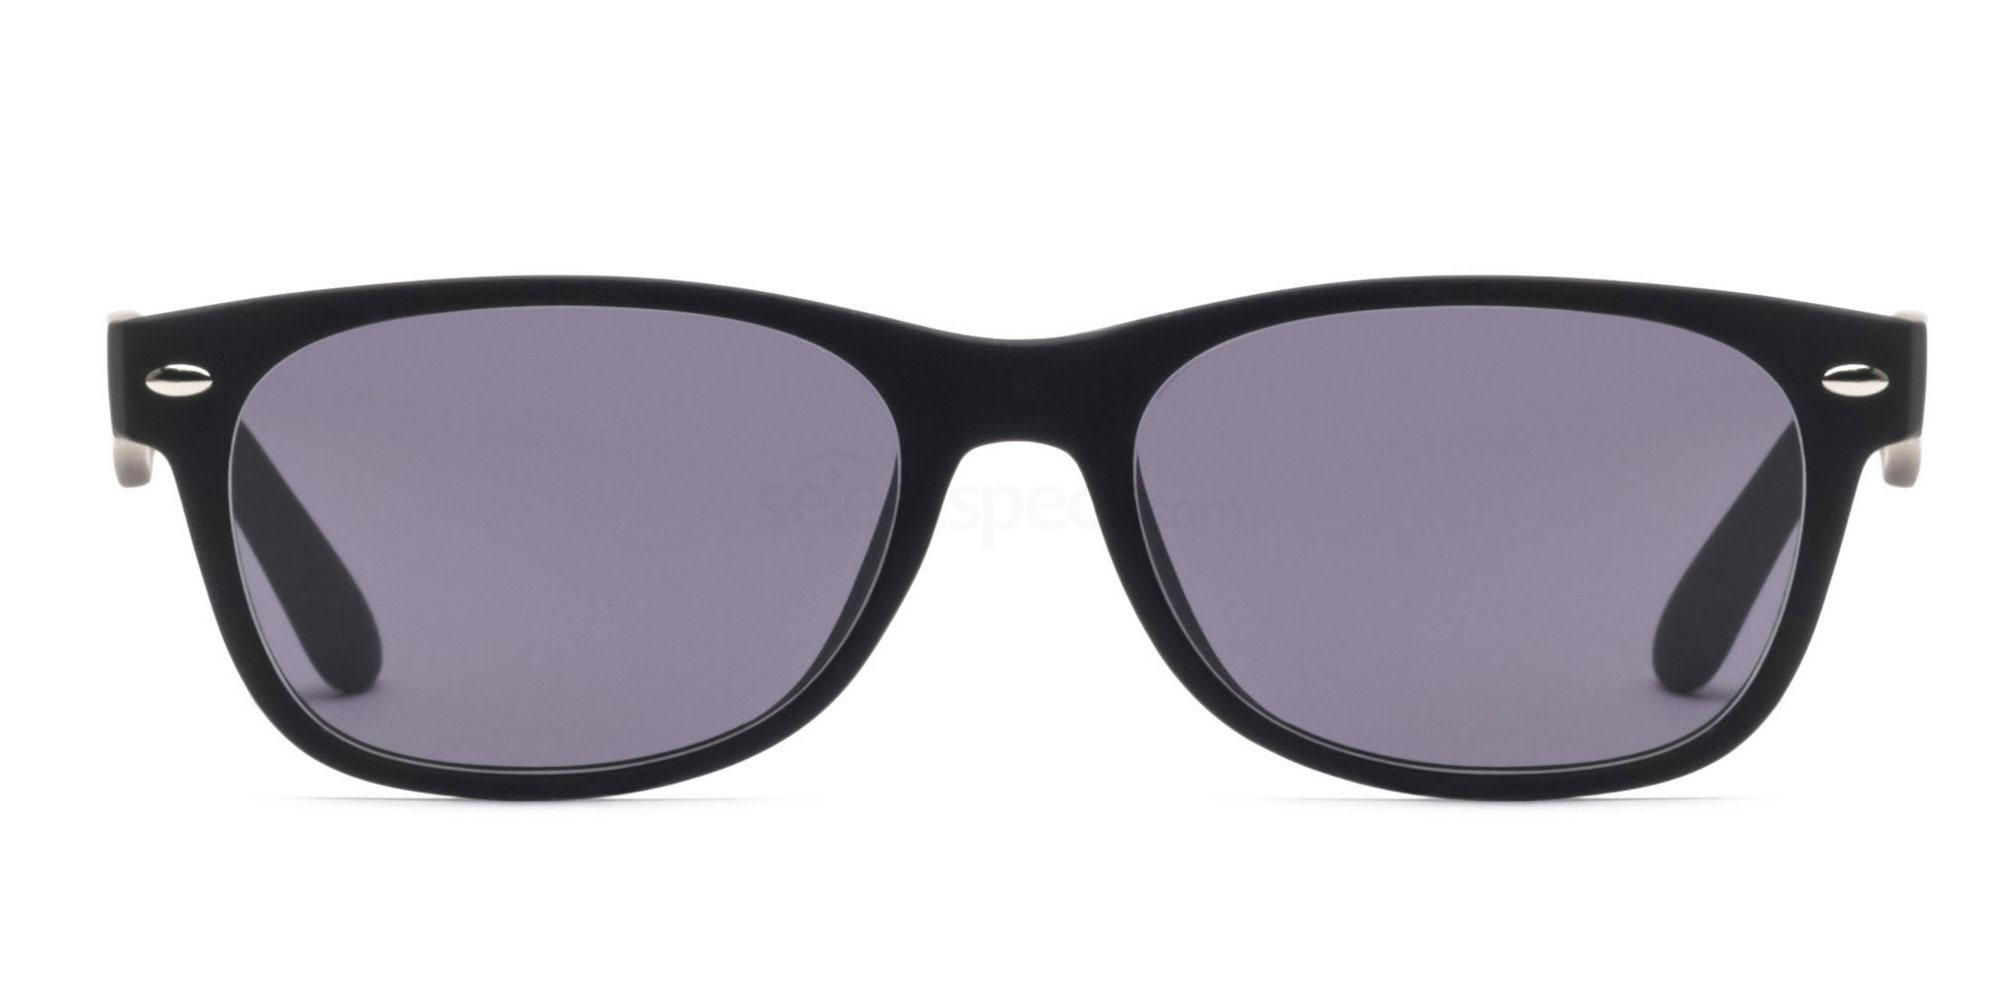 black wayfarer sunglasses £10